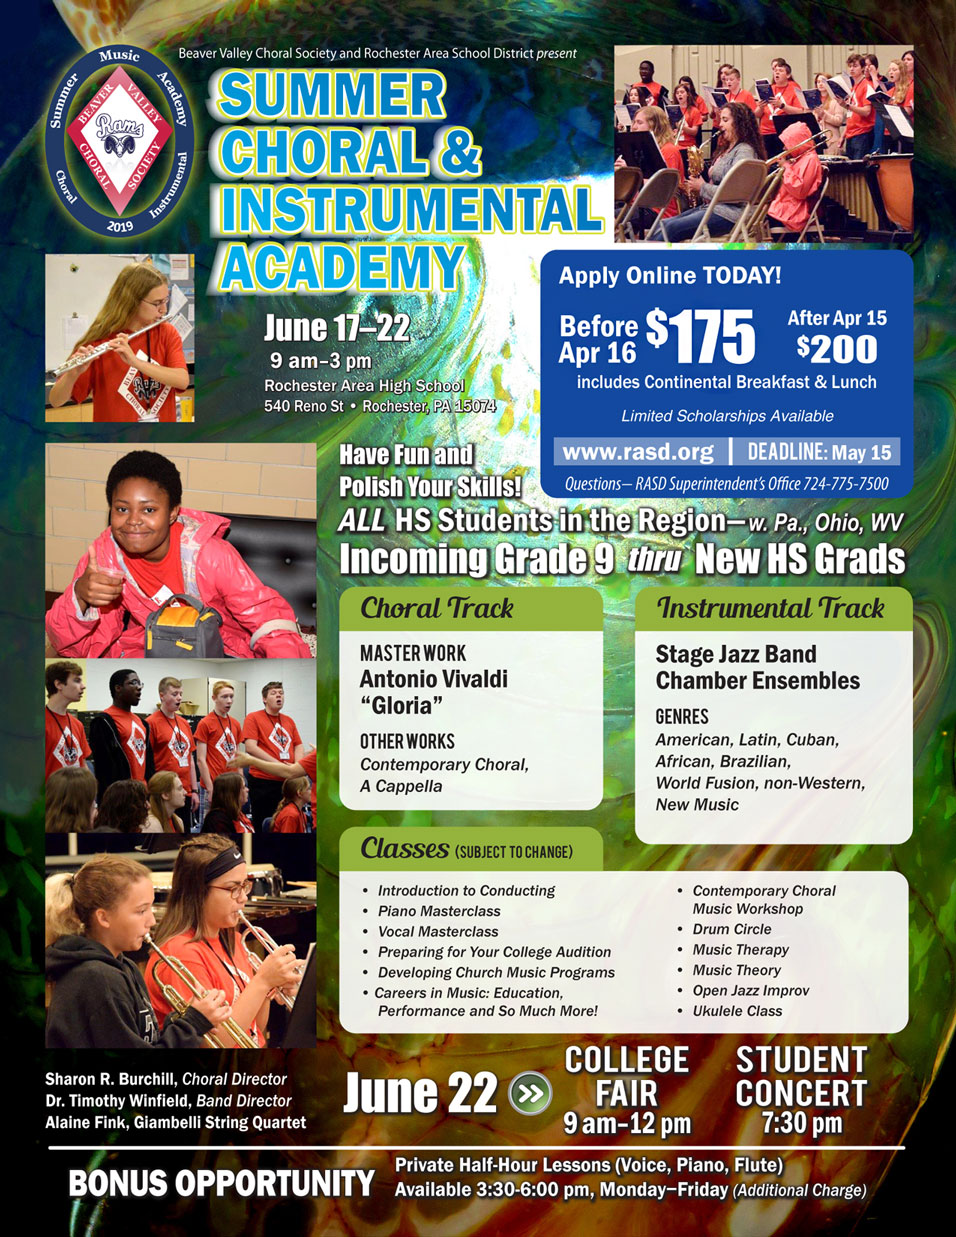 Summer Choral & Instrumental Academy